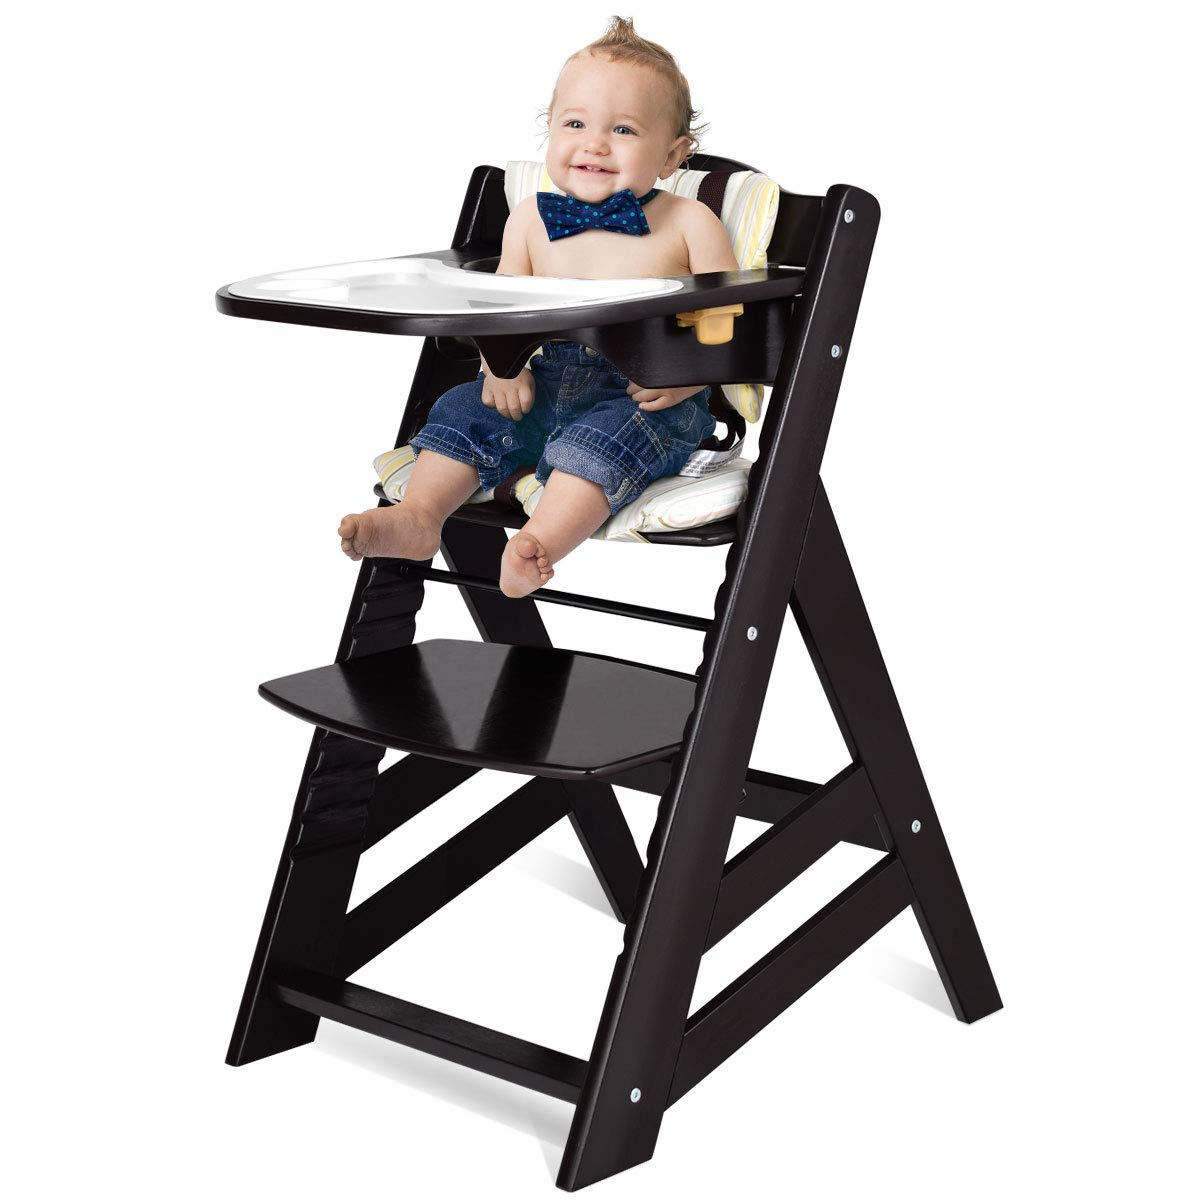 Wooden High Chair with Removable Tray and Adjustable Legs for Baby//Infants//Toddlers Dark Gray